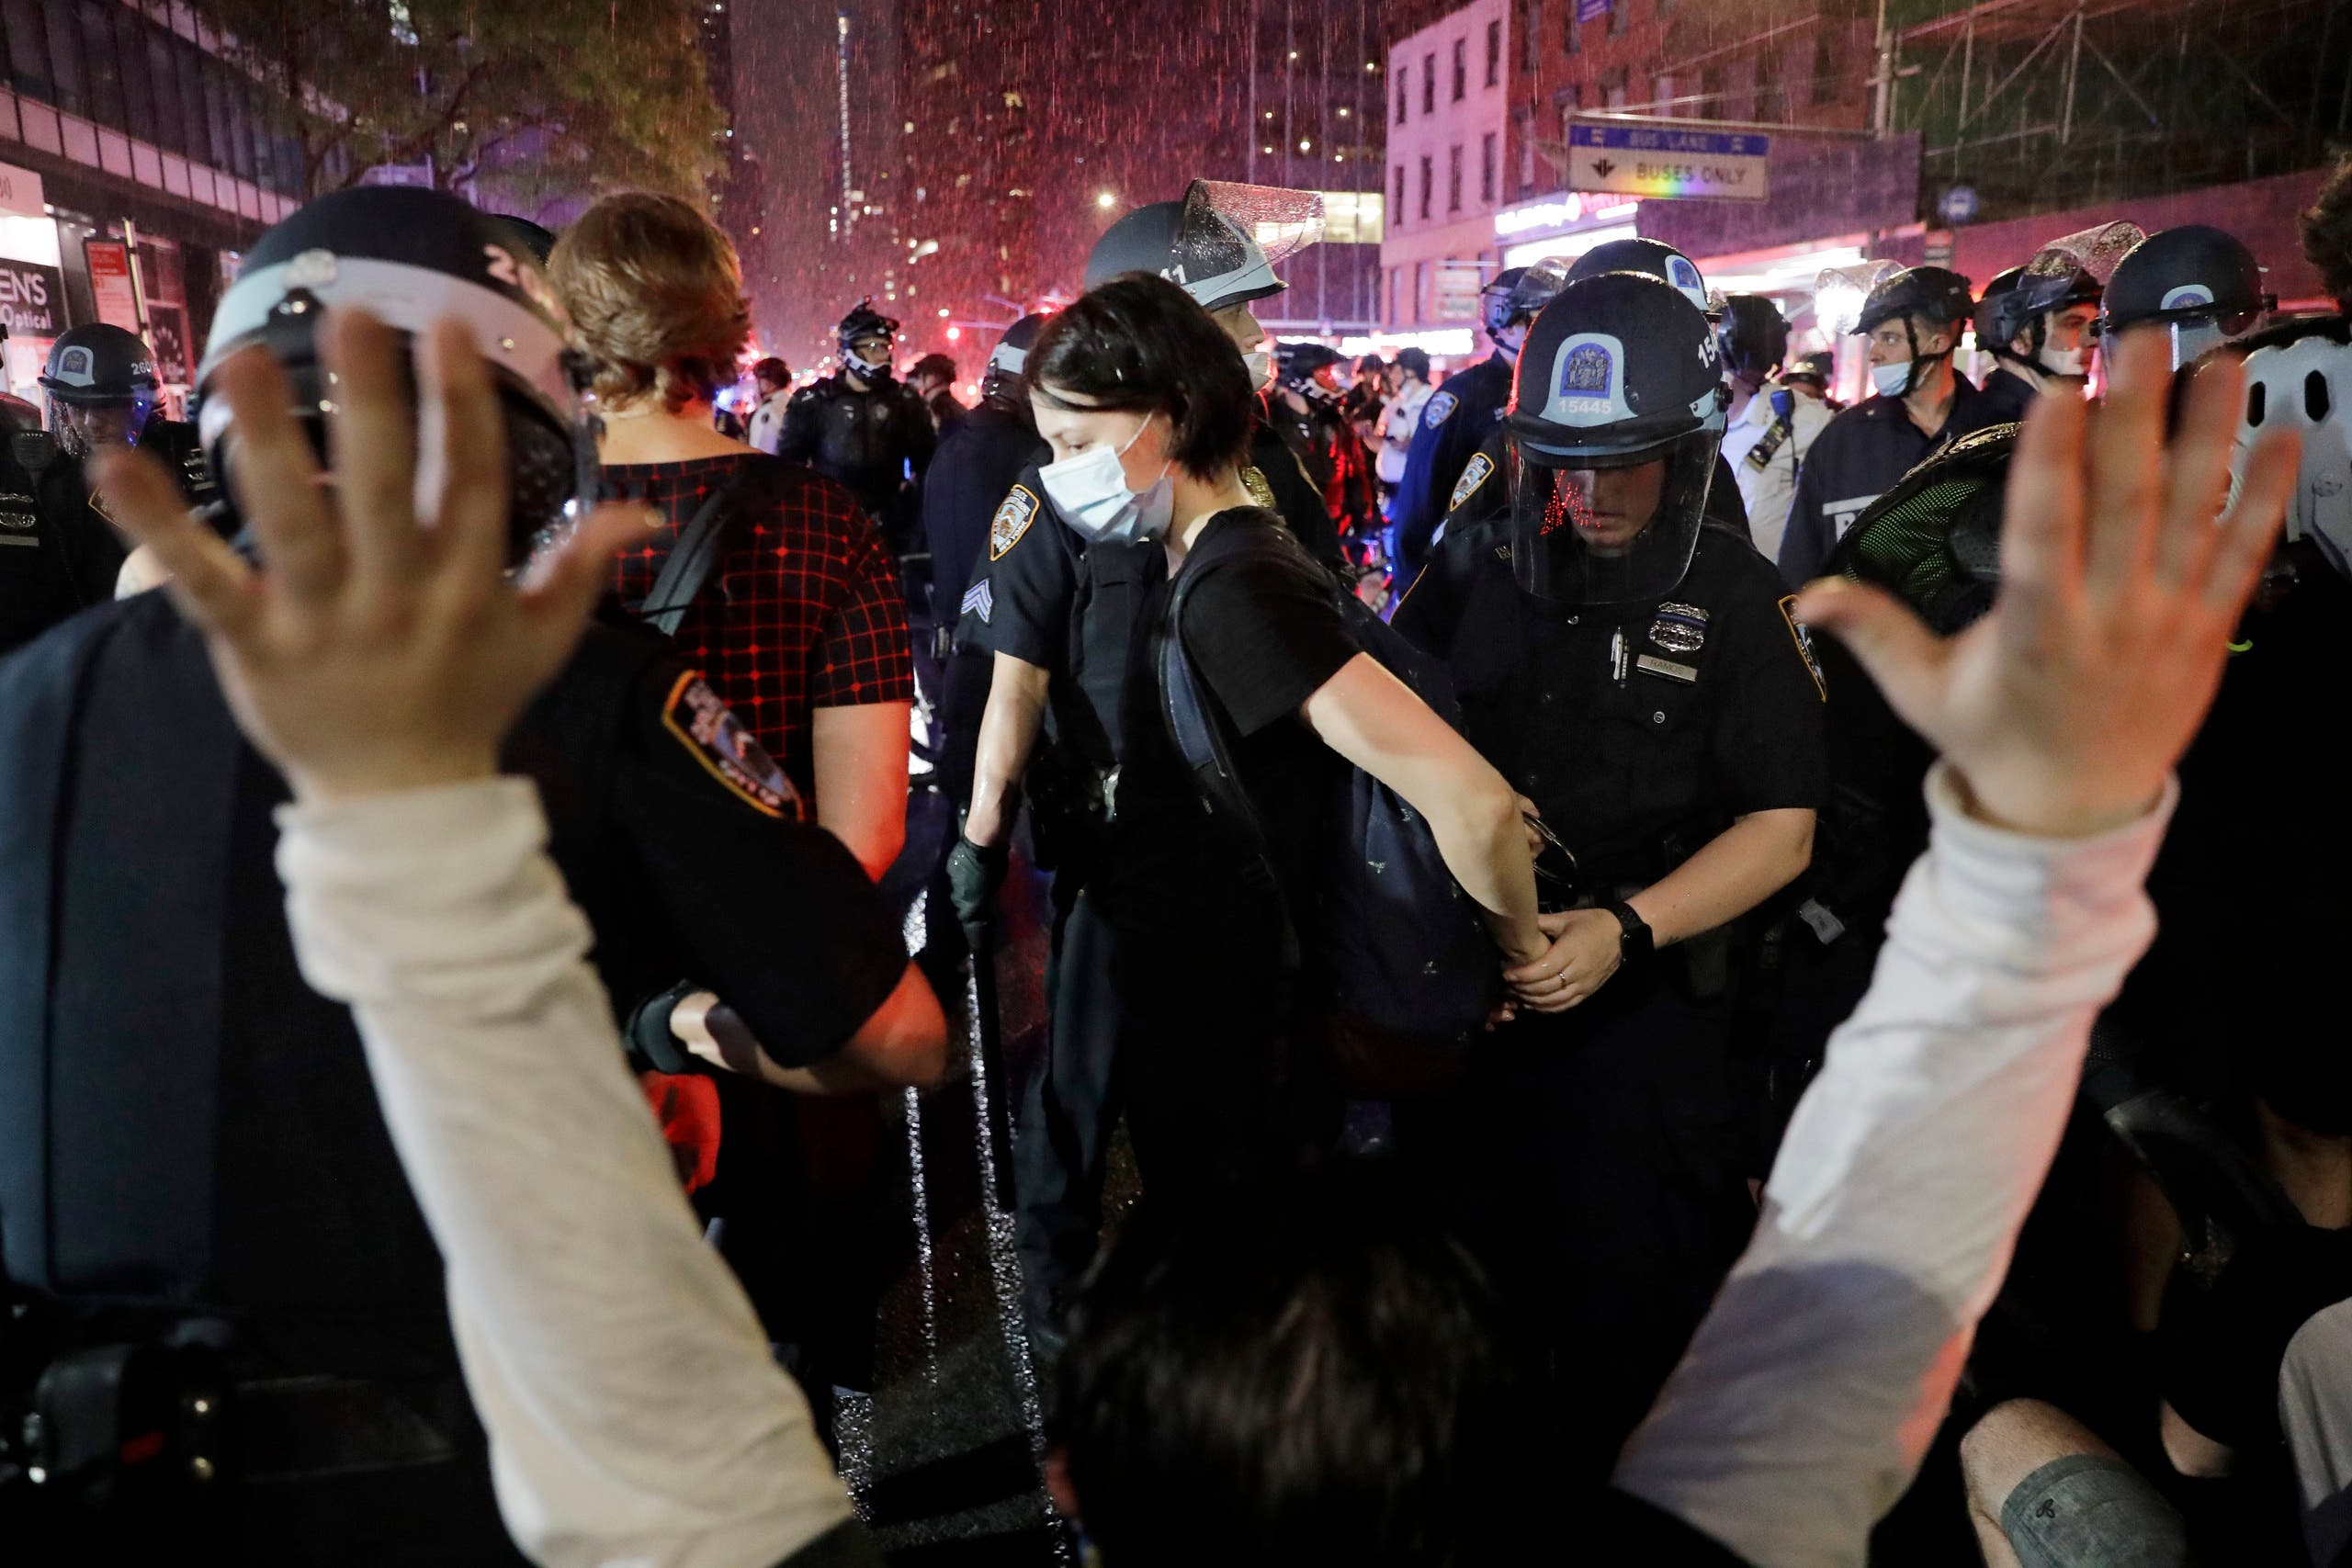 Police arrest protesters as they march through the streets of Manhattan, New York, on June 3, 2020. (AP)